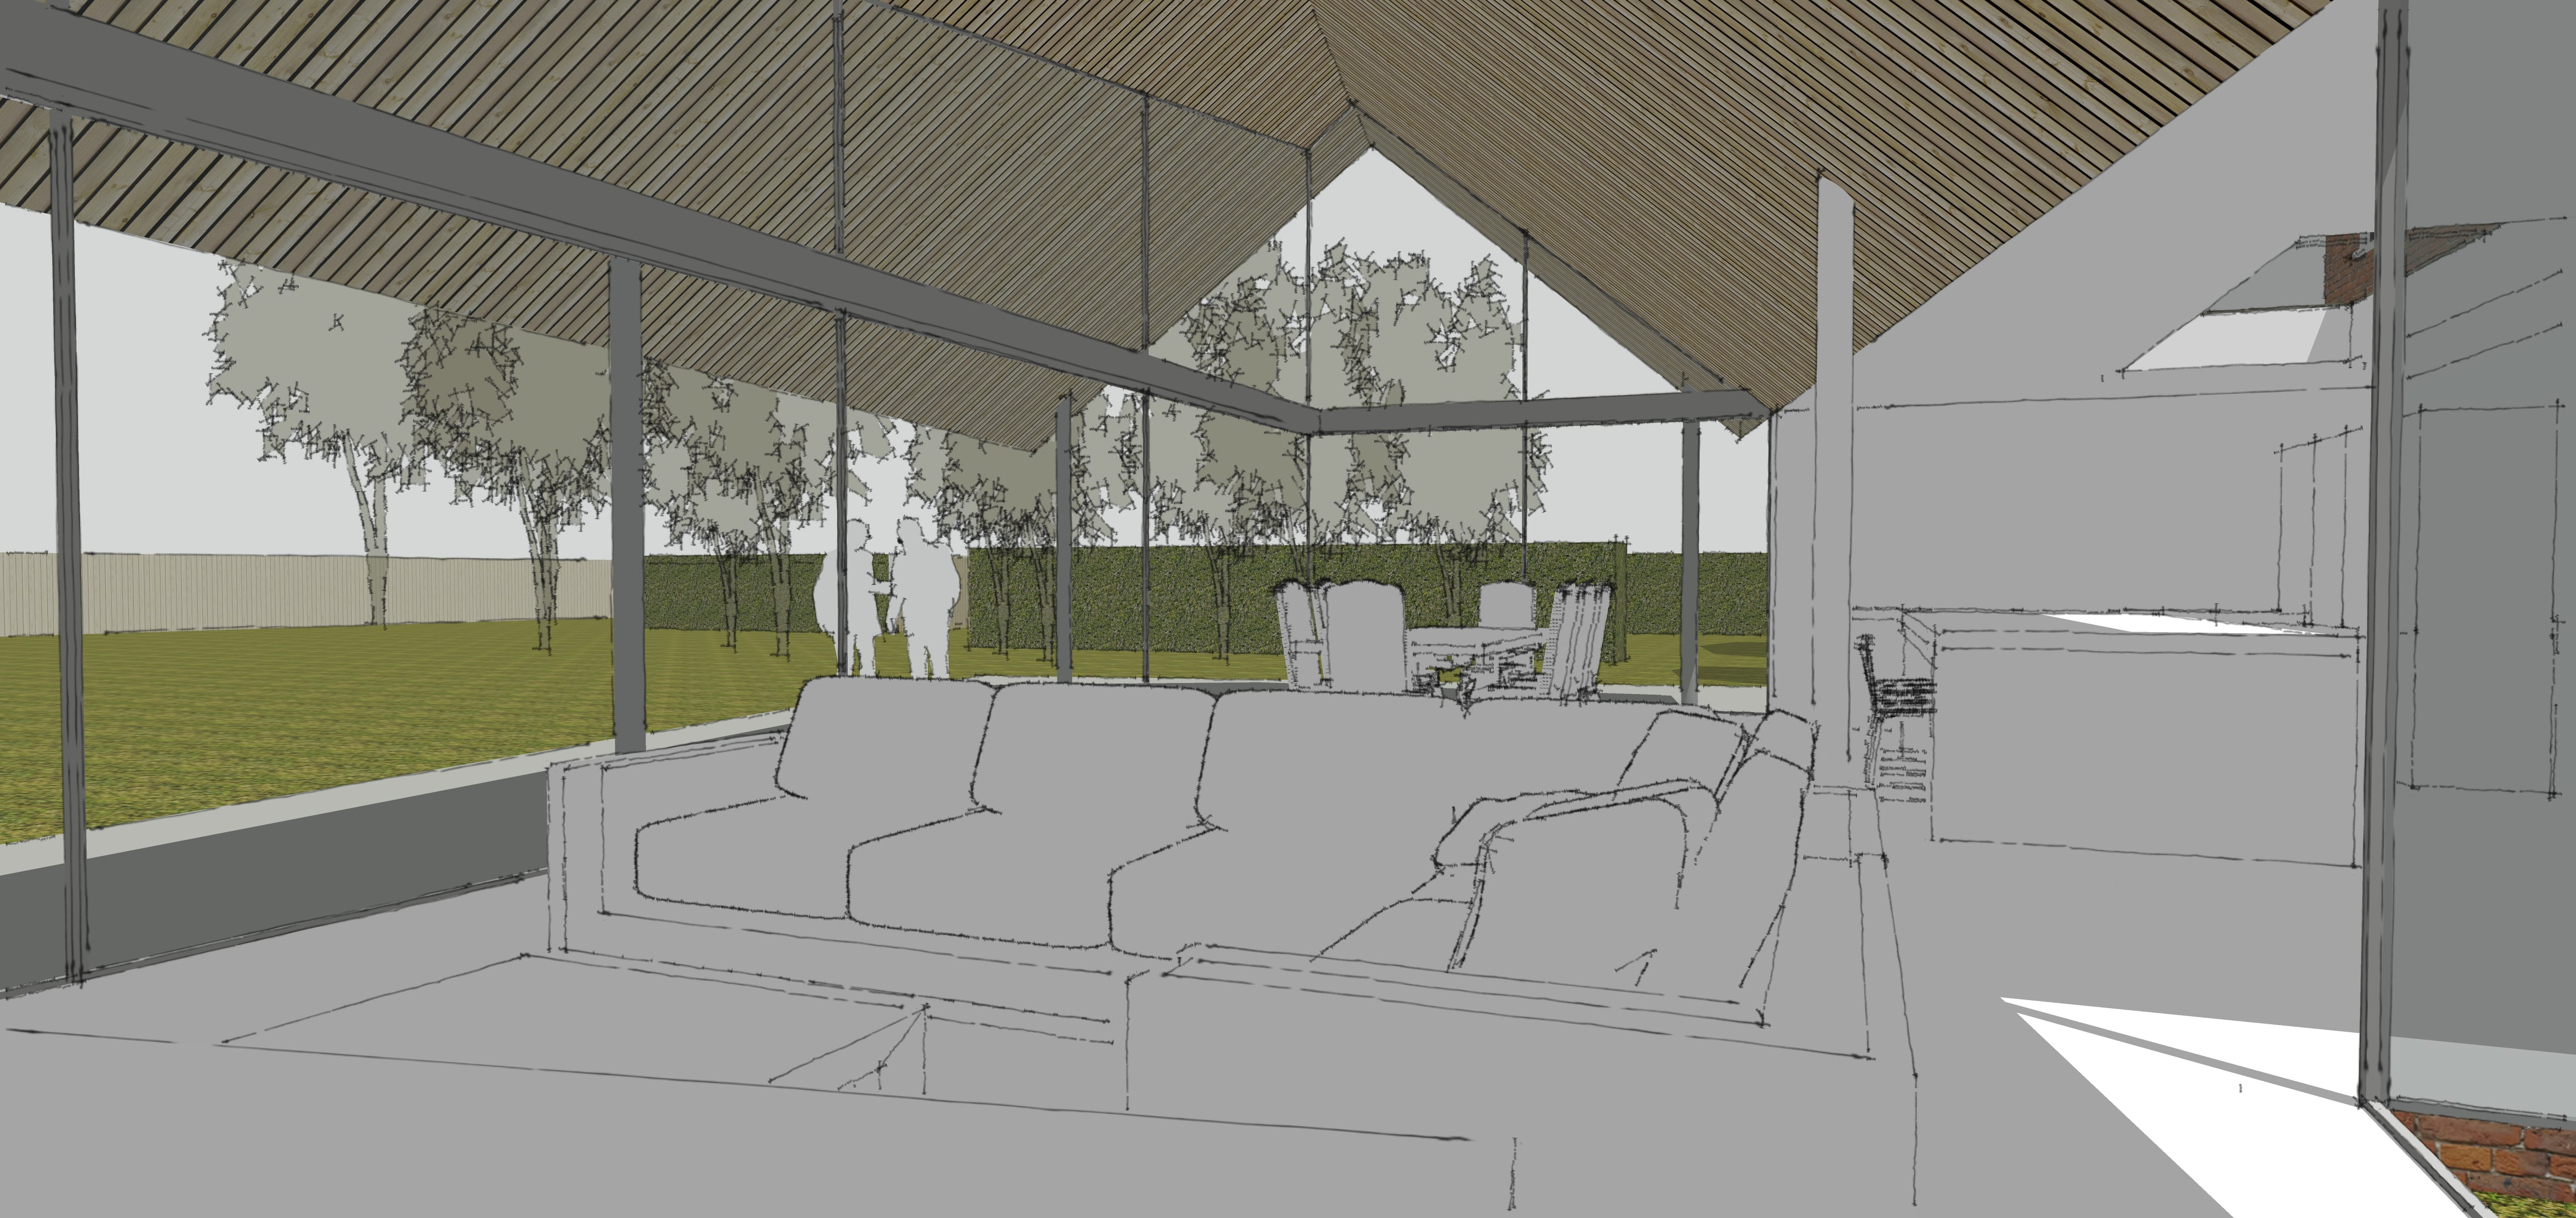 Planning Permission Granted for innovative glazed extension…